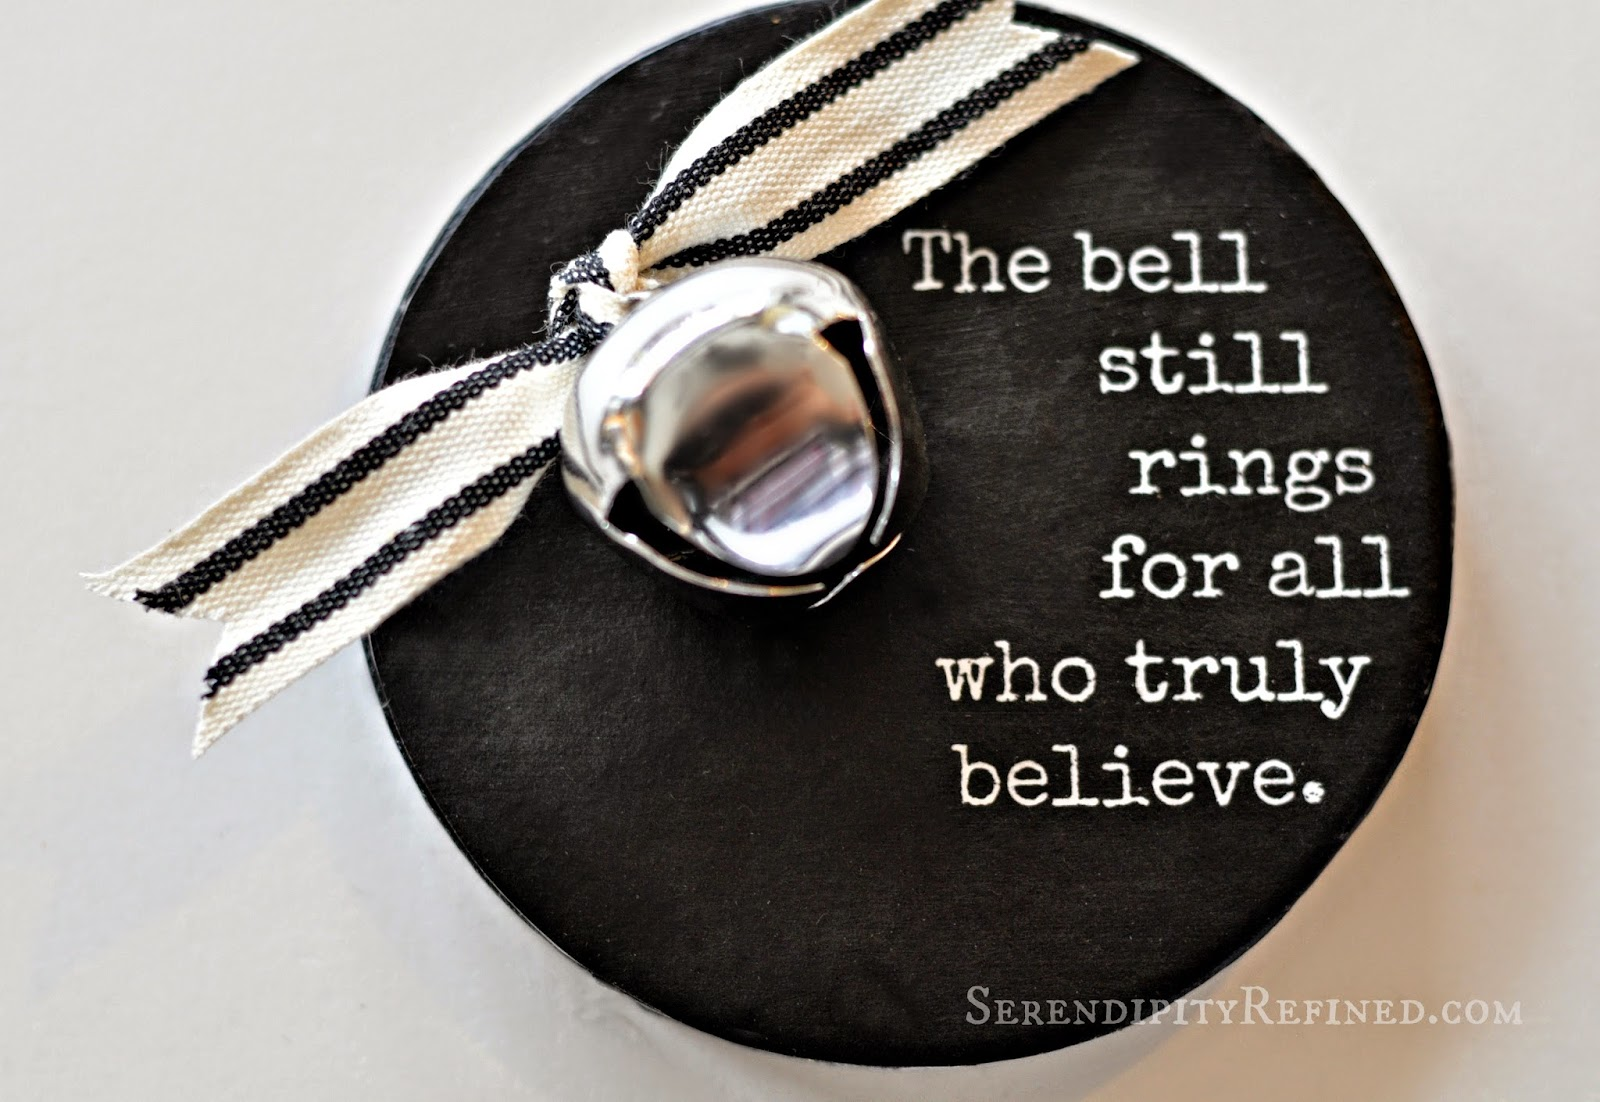 Serendipity refined polar express bell quote